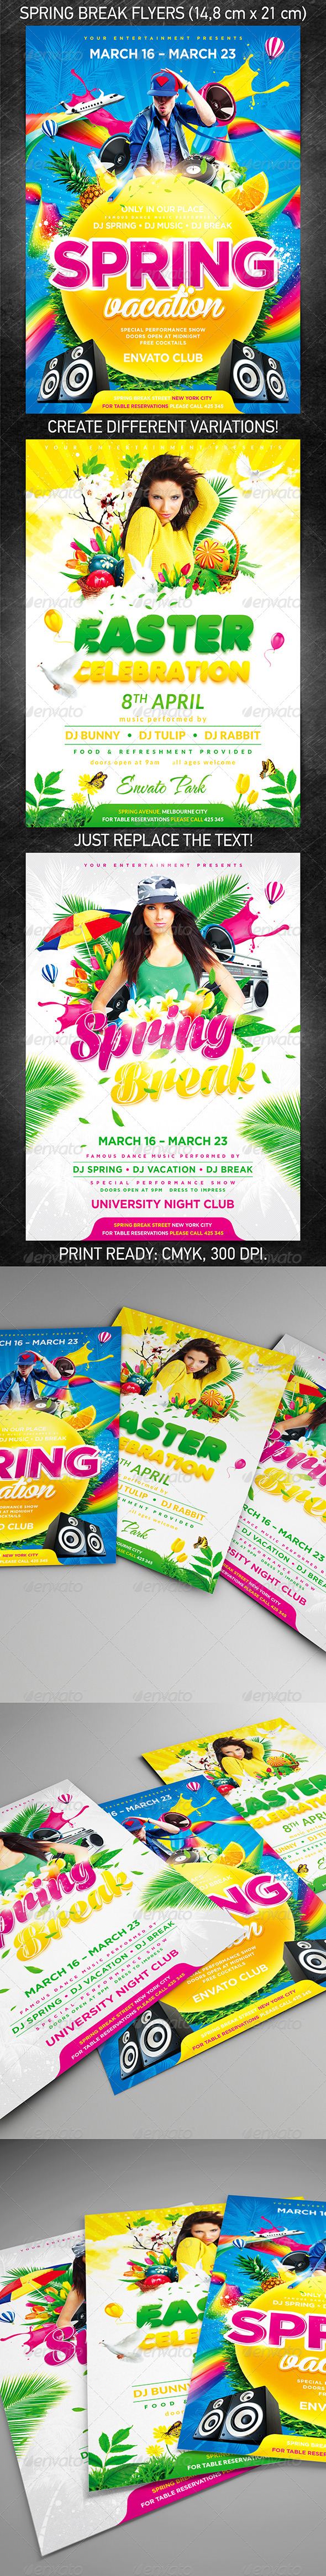 Spring break party flyer bundle, PSD Template